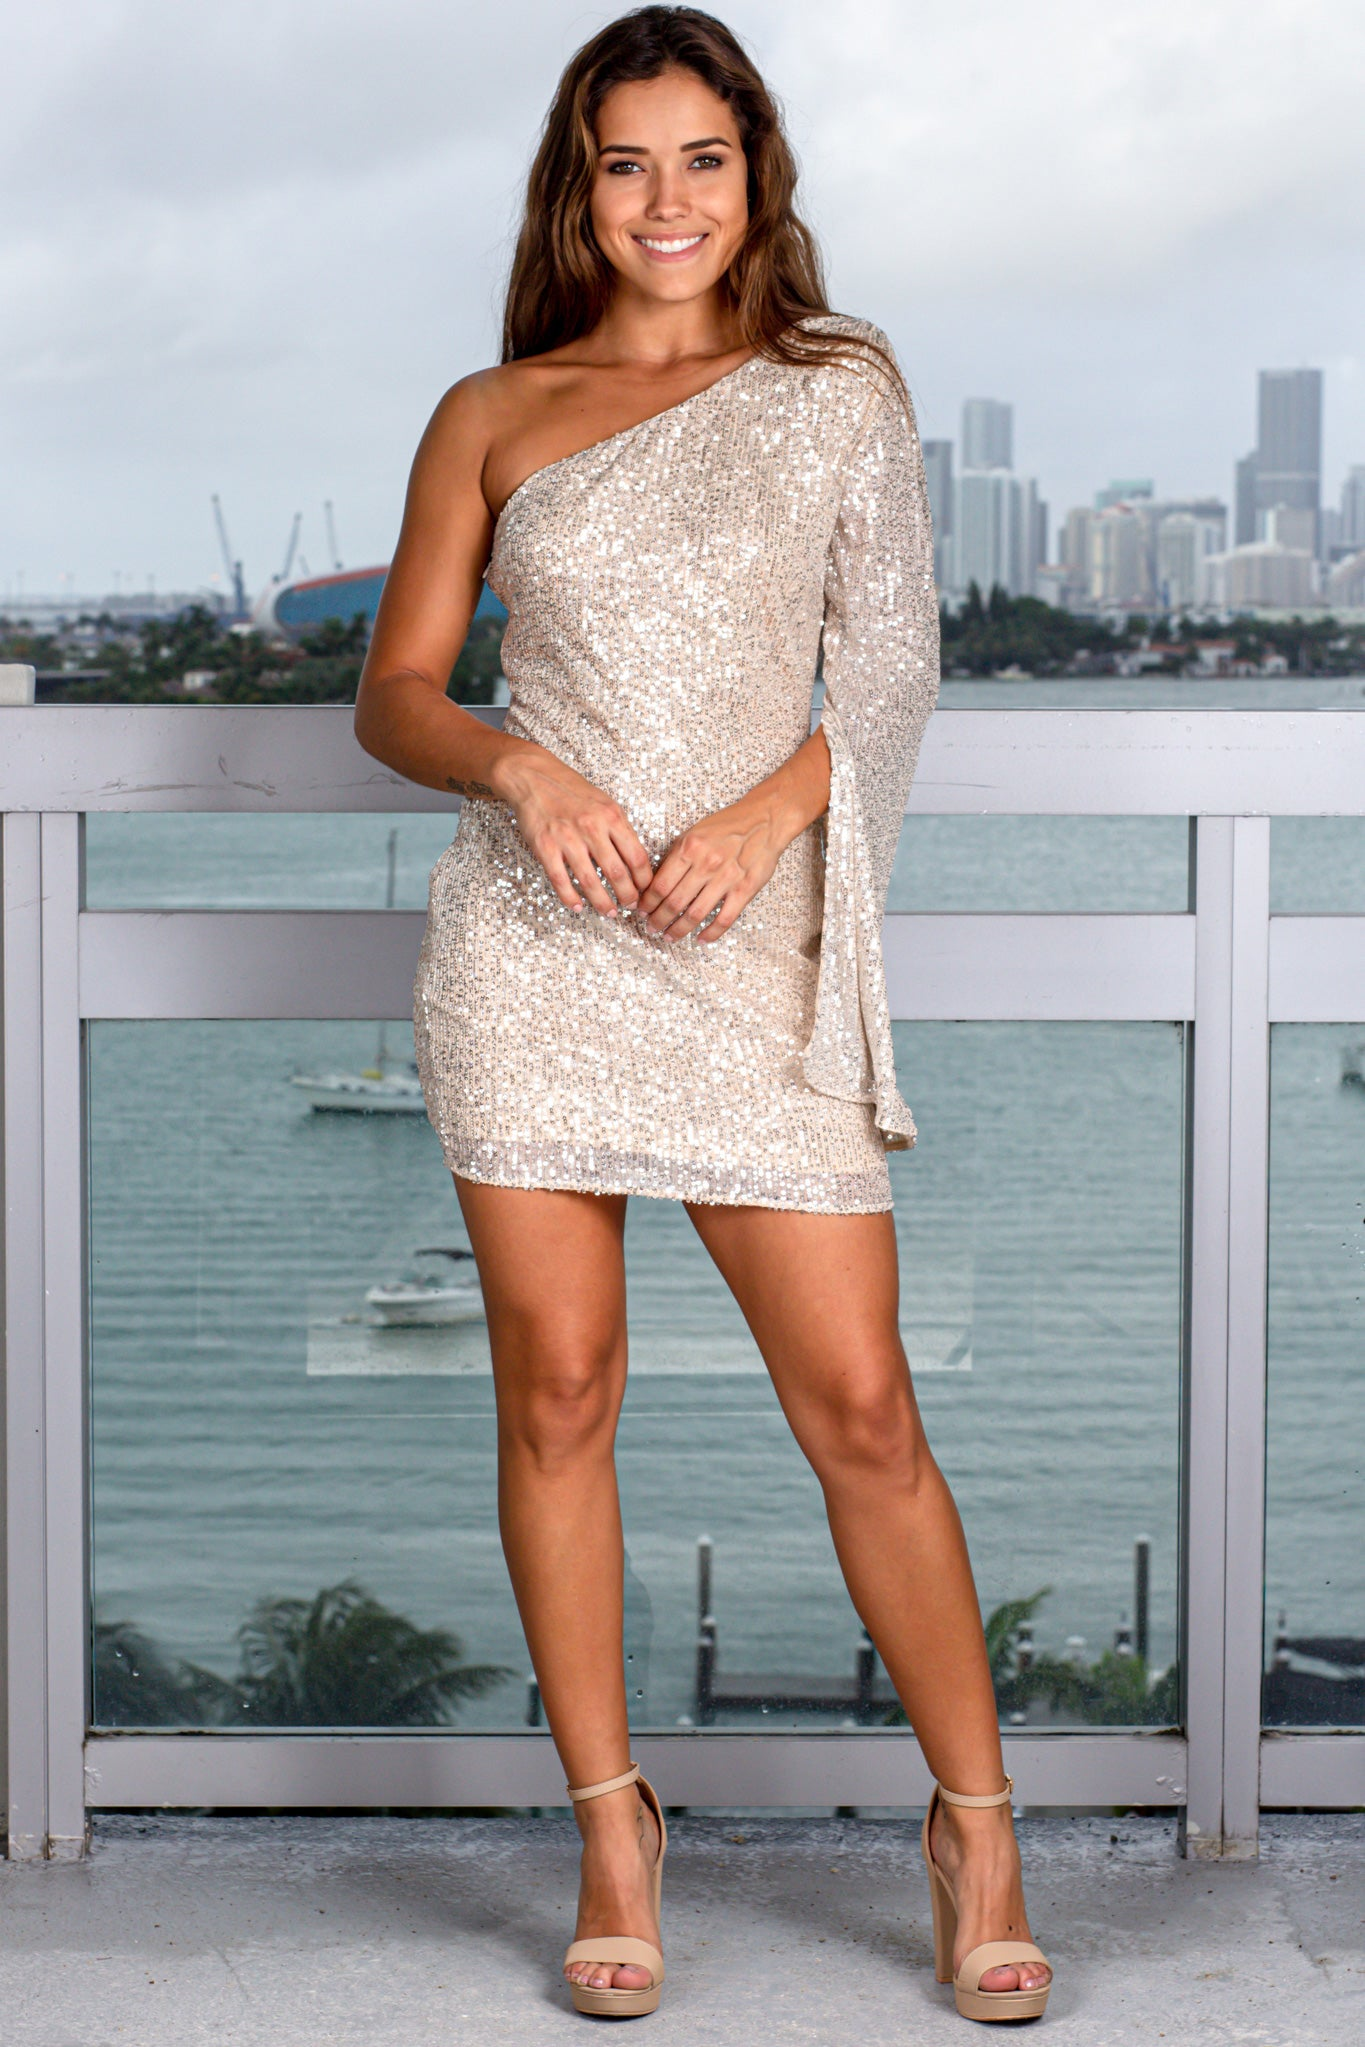 Beige and Silver One Shoulder Short Dress